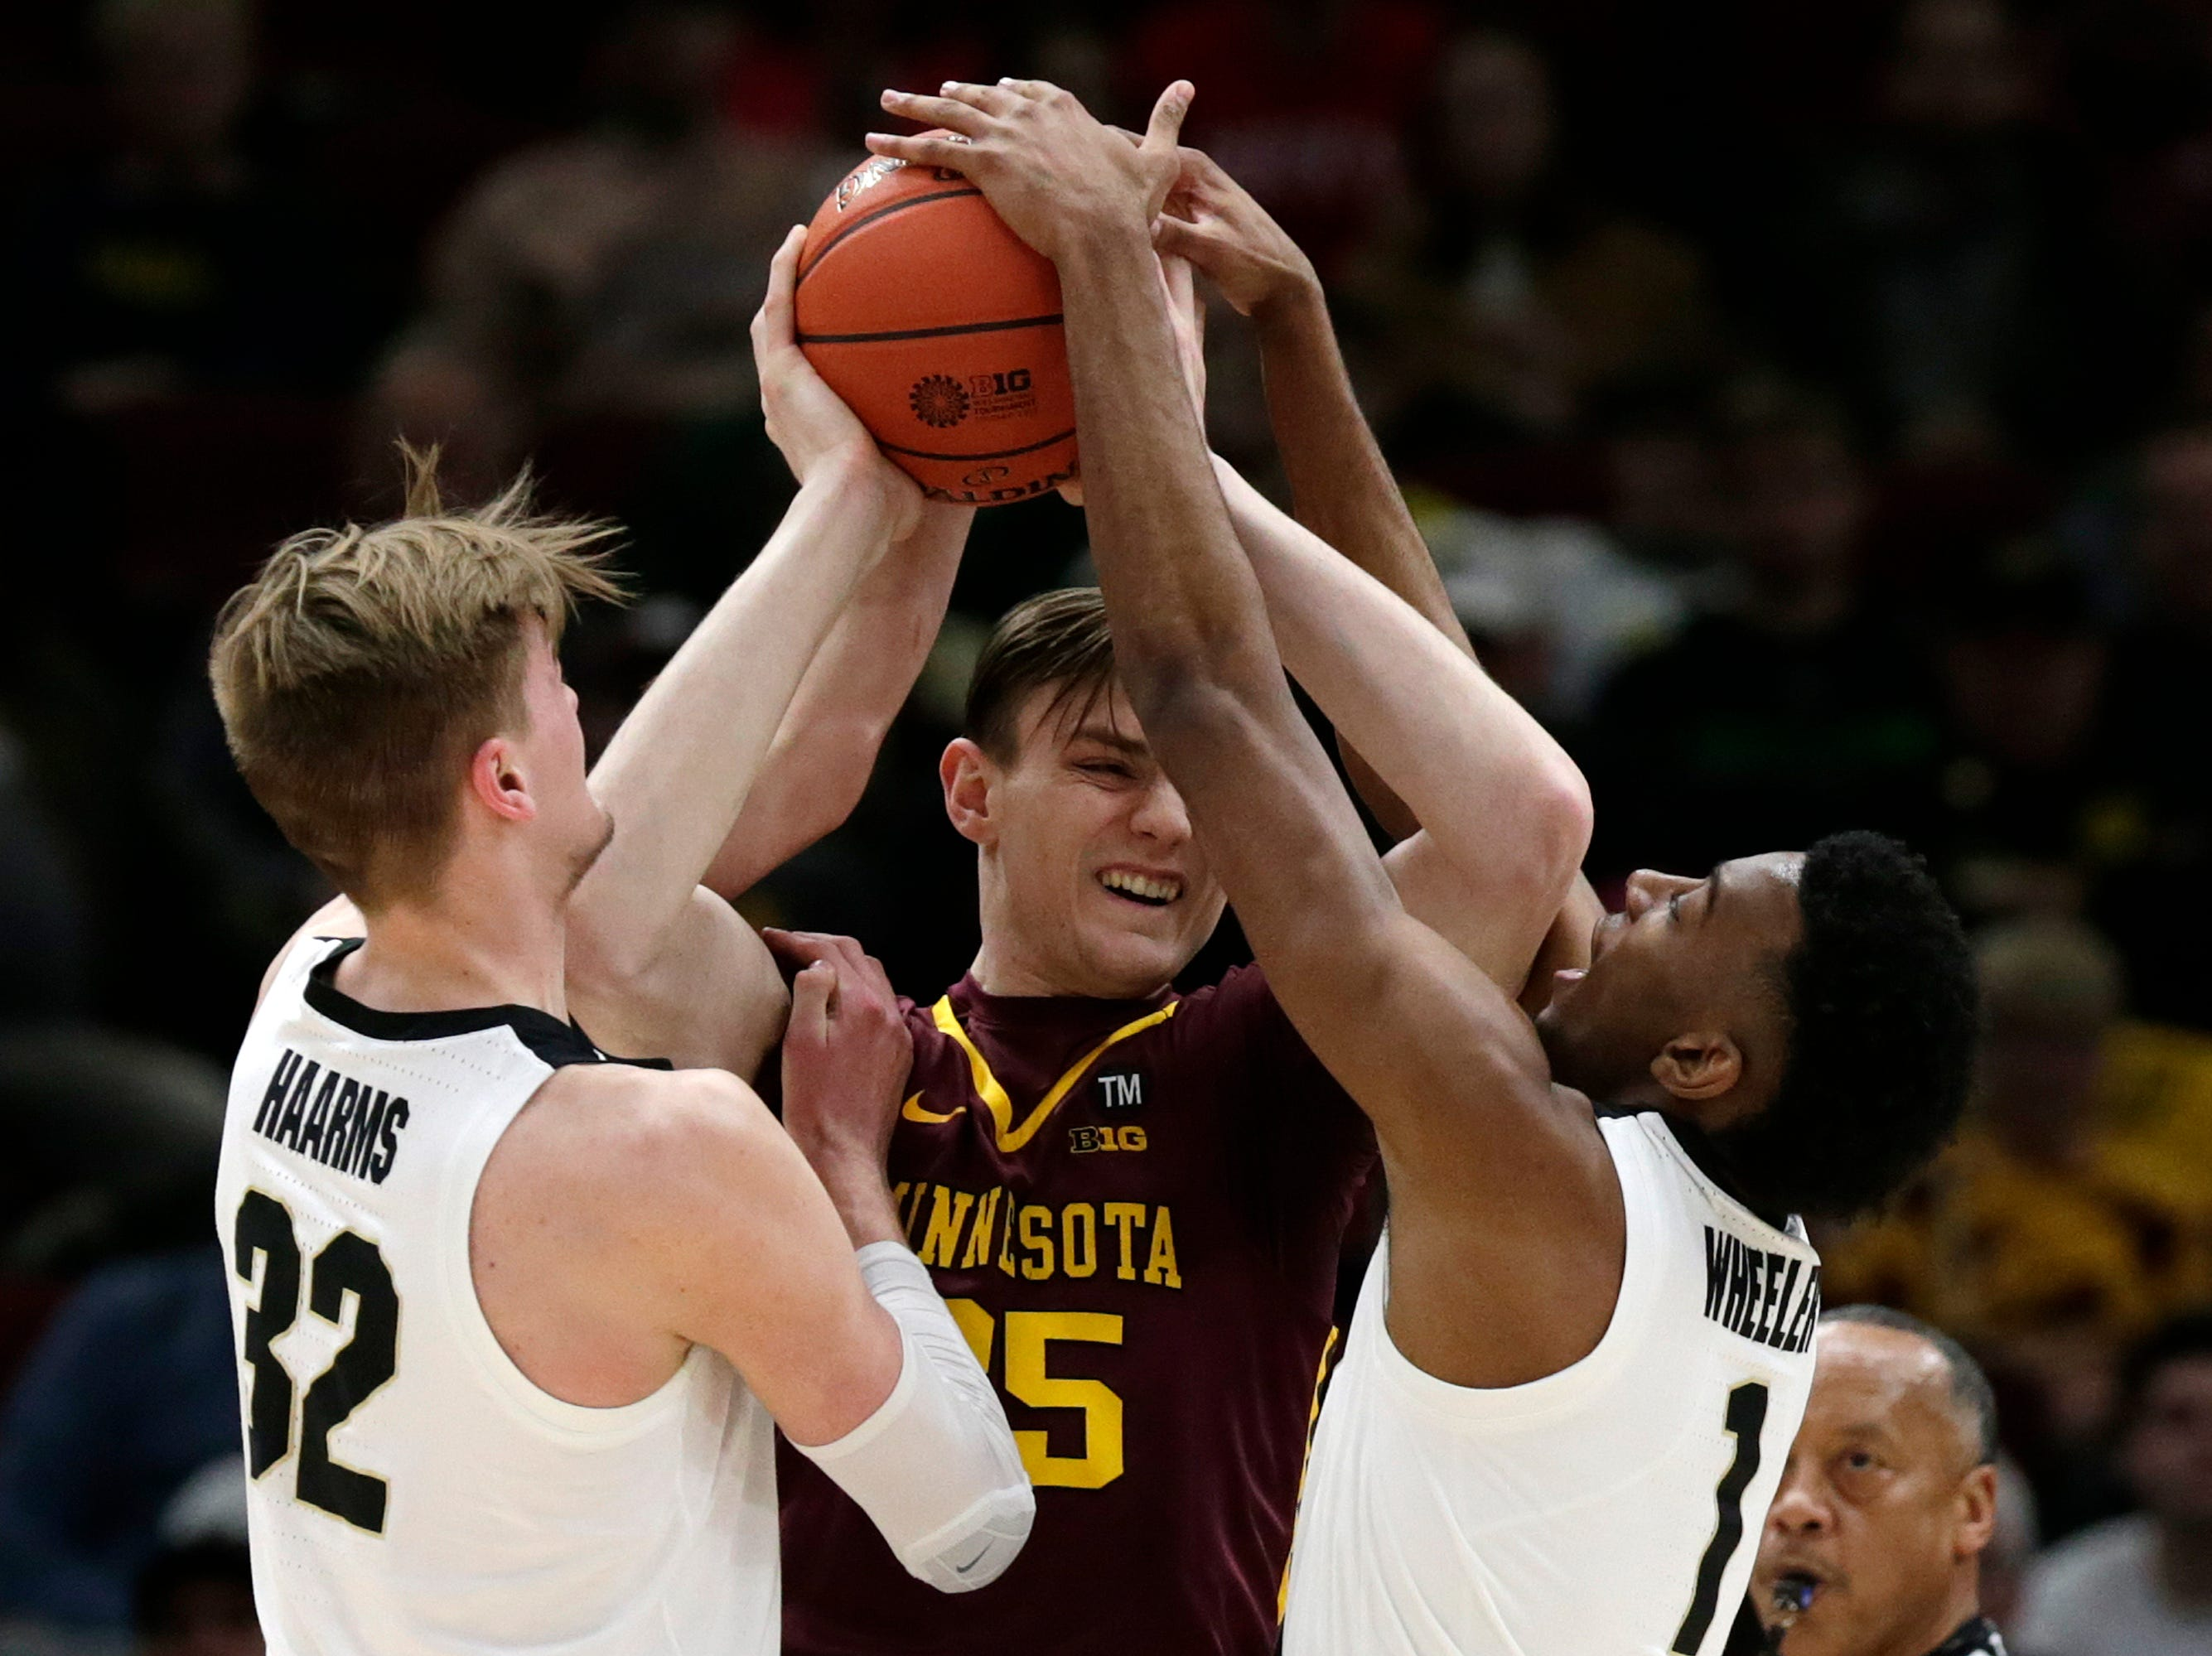 Minnesota's Matz Stockman (35) battles against Purdue's Matt Haarms (32) and Aaron Wheeler (1) as he tries to pass during the first half of an NCAA college basketball game in the quarterfinals of the Big Ten Conference tournament, Friday, March 15, 2019, in Chicago. (AP Photo/Kiichiro Sato)